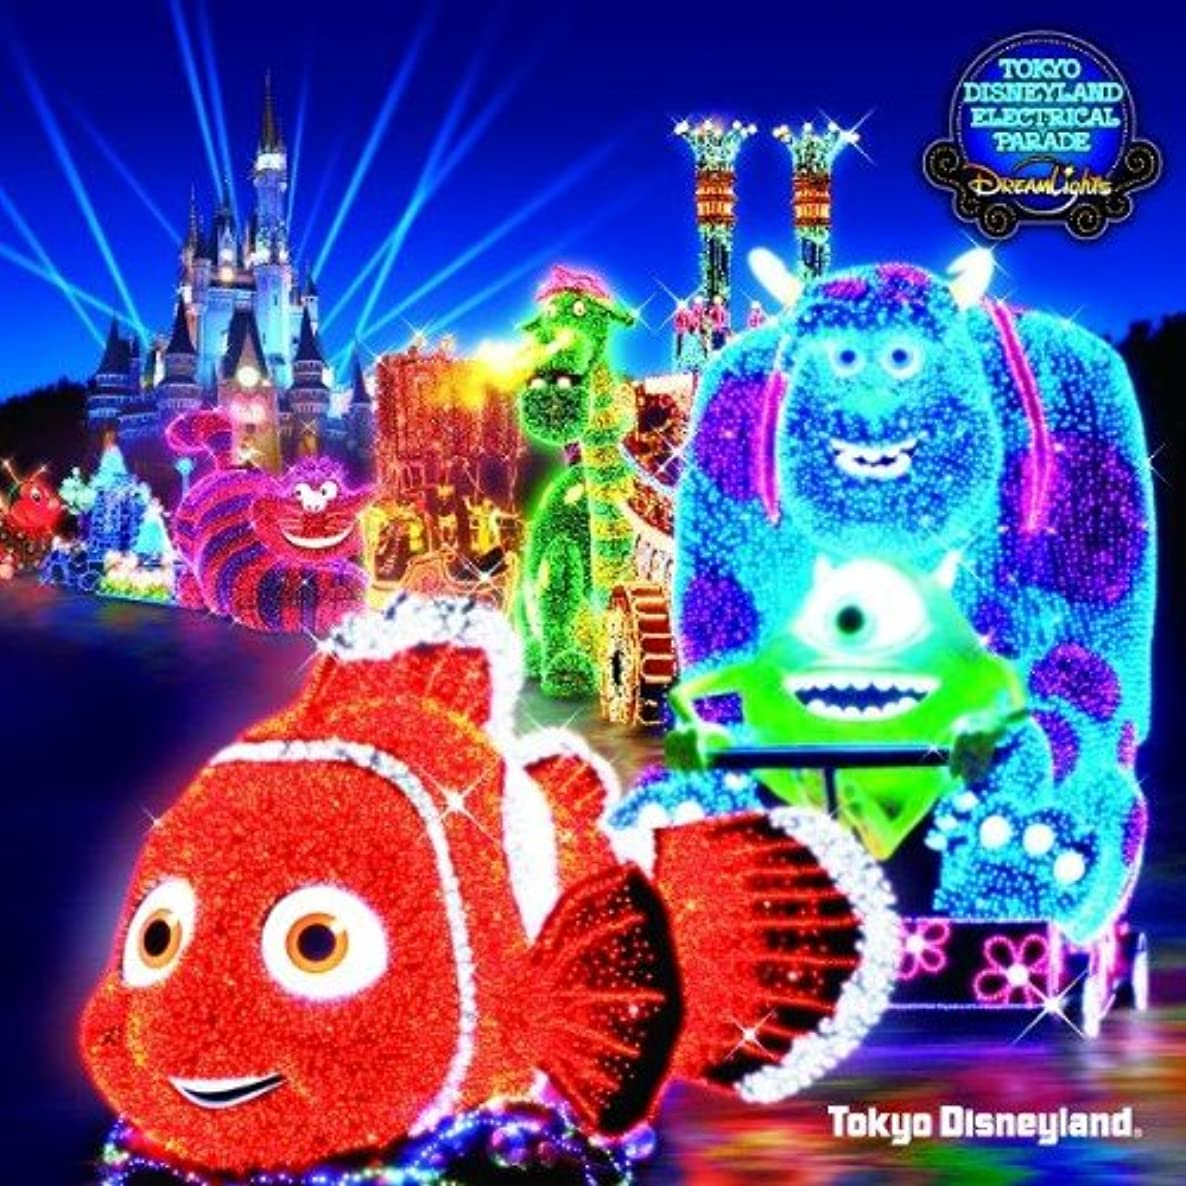 TOKYO DISNEYLAND ELECTRICAL PARADE DREAM LIGHTS